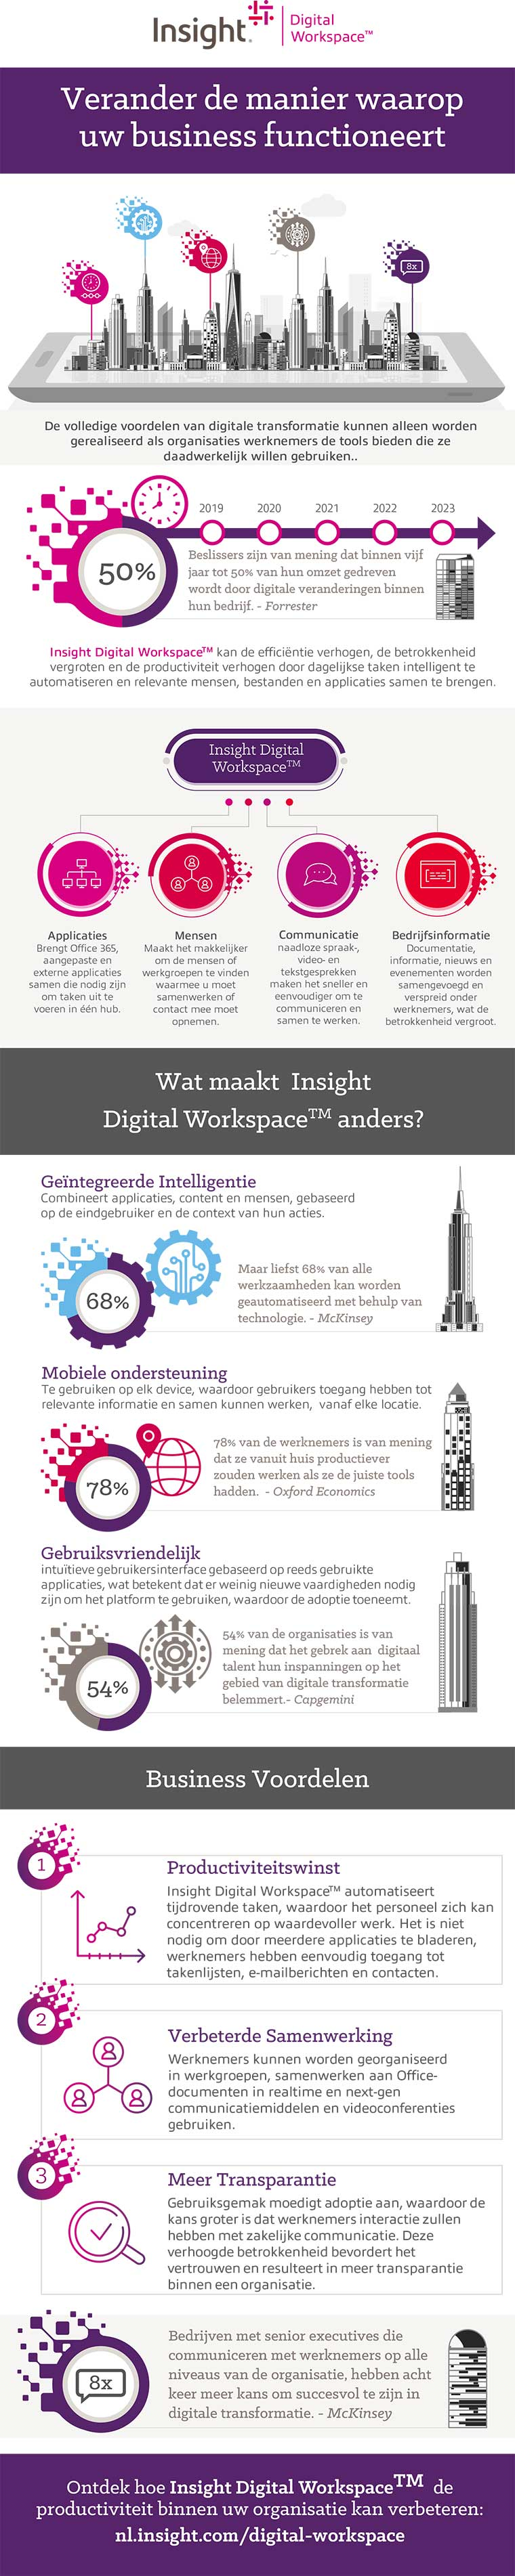 Insight Digital Workspace Infographic